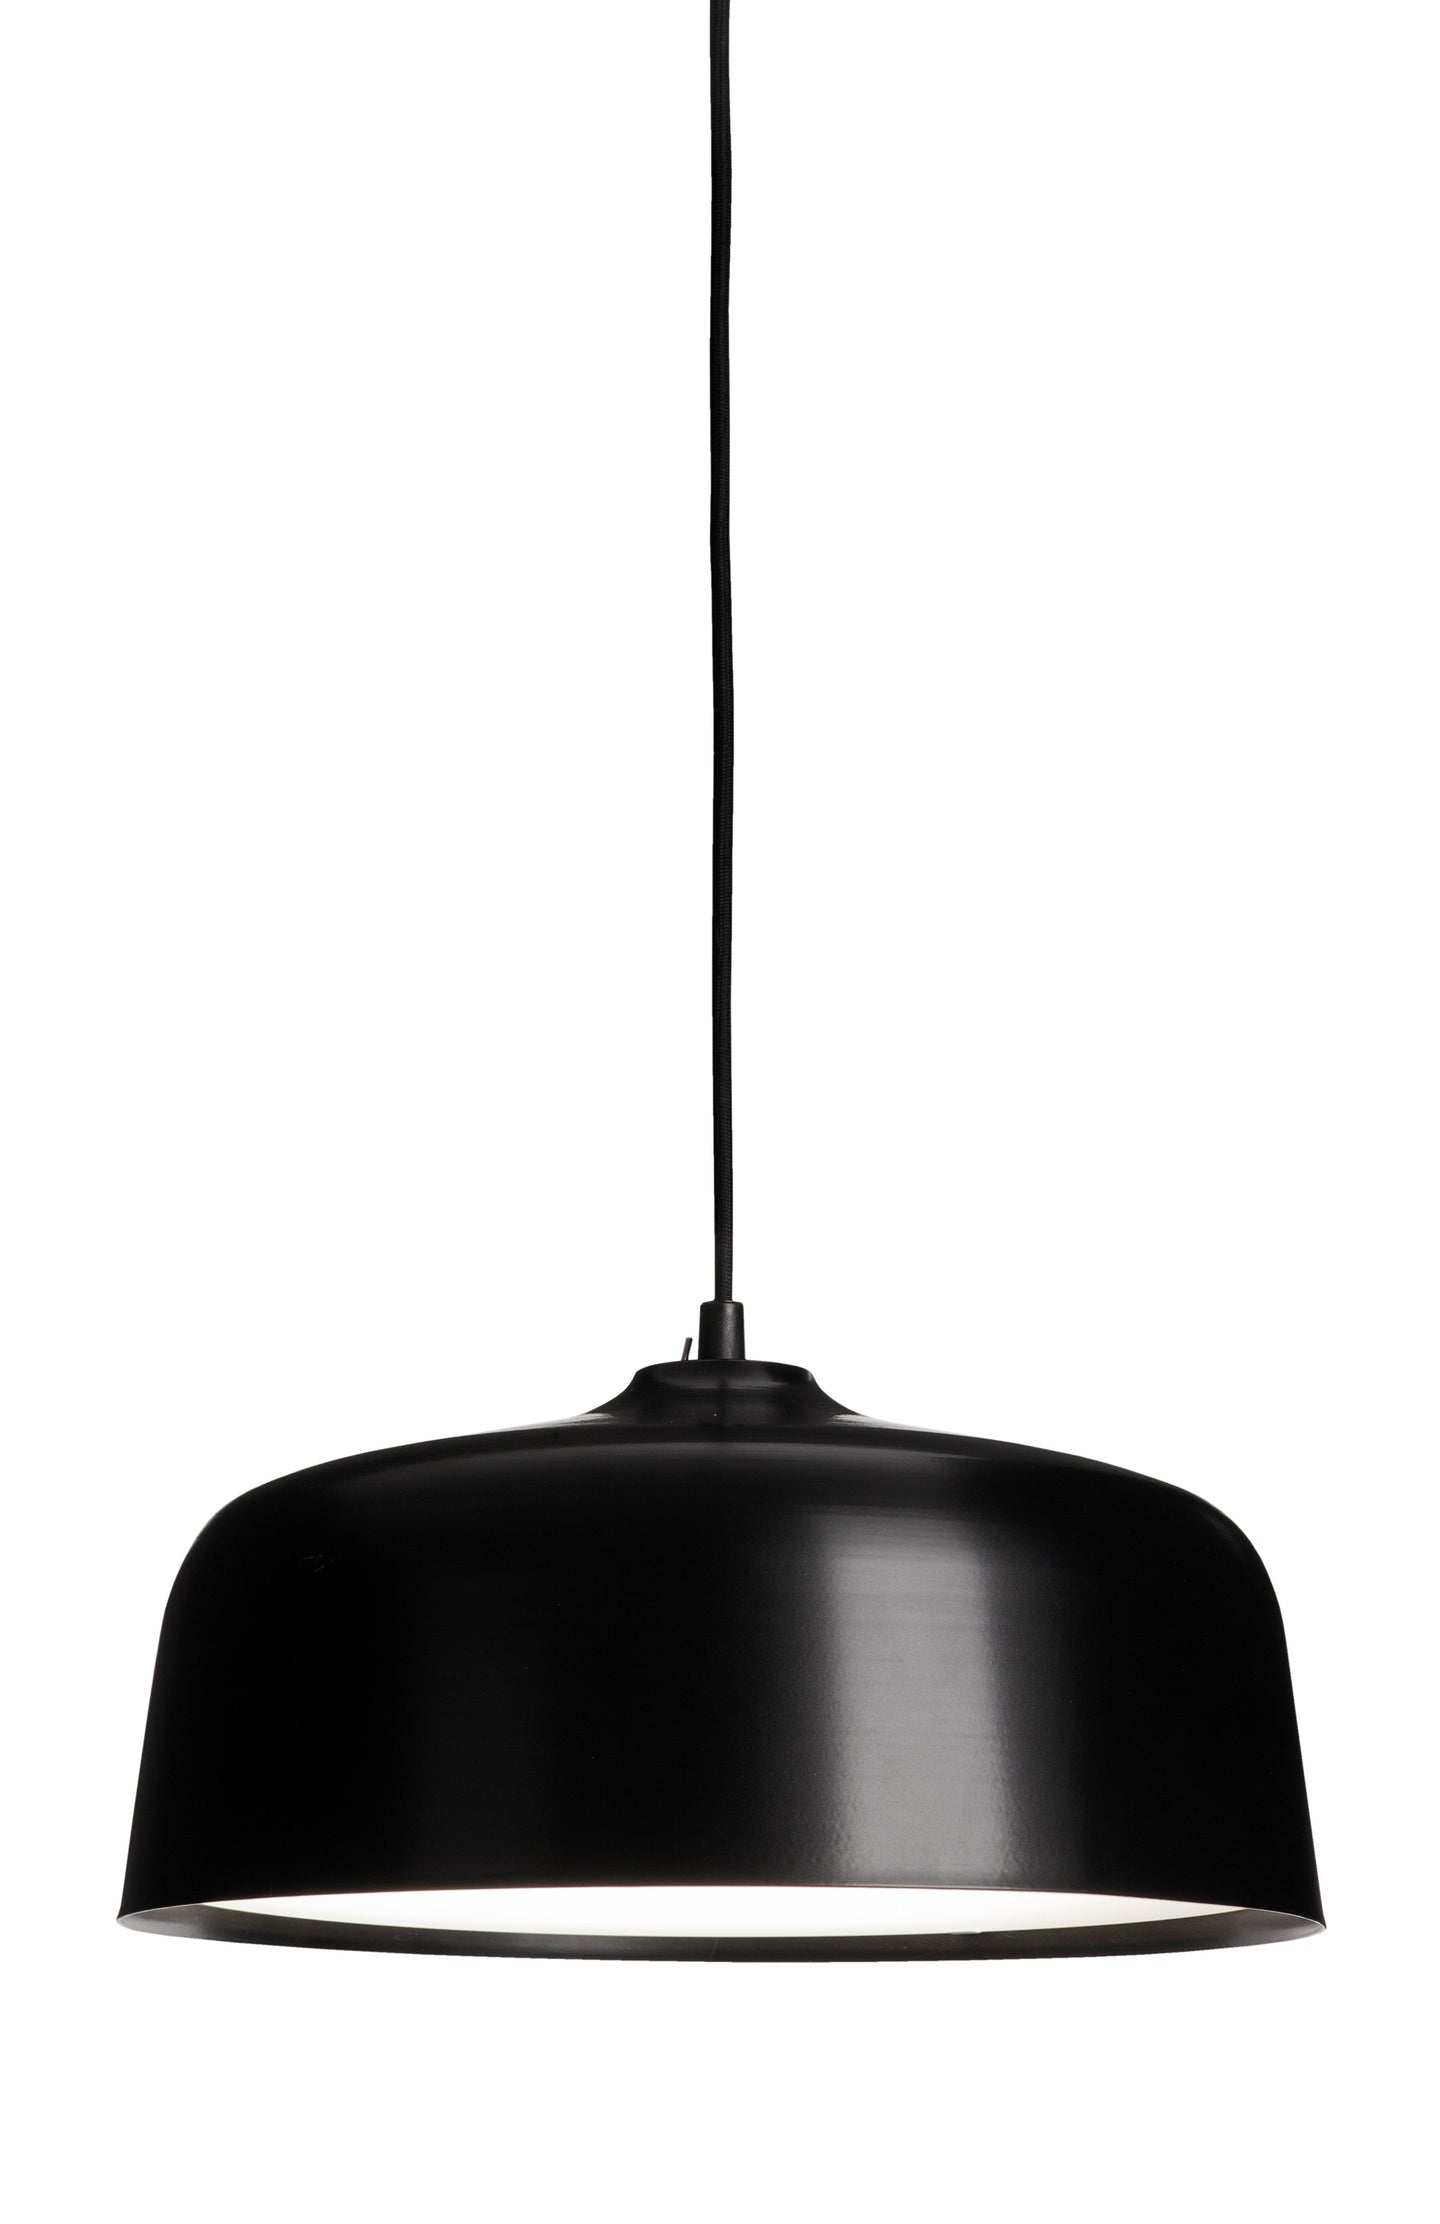 Candeo bright light lamp